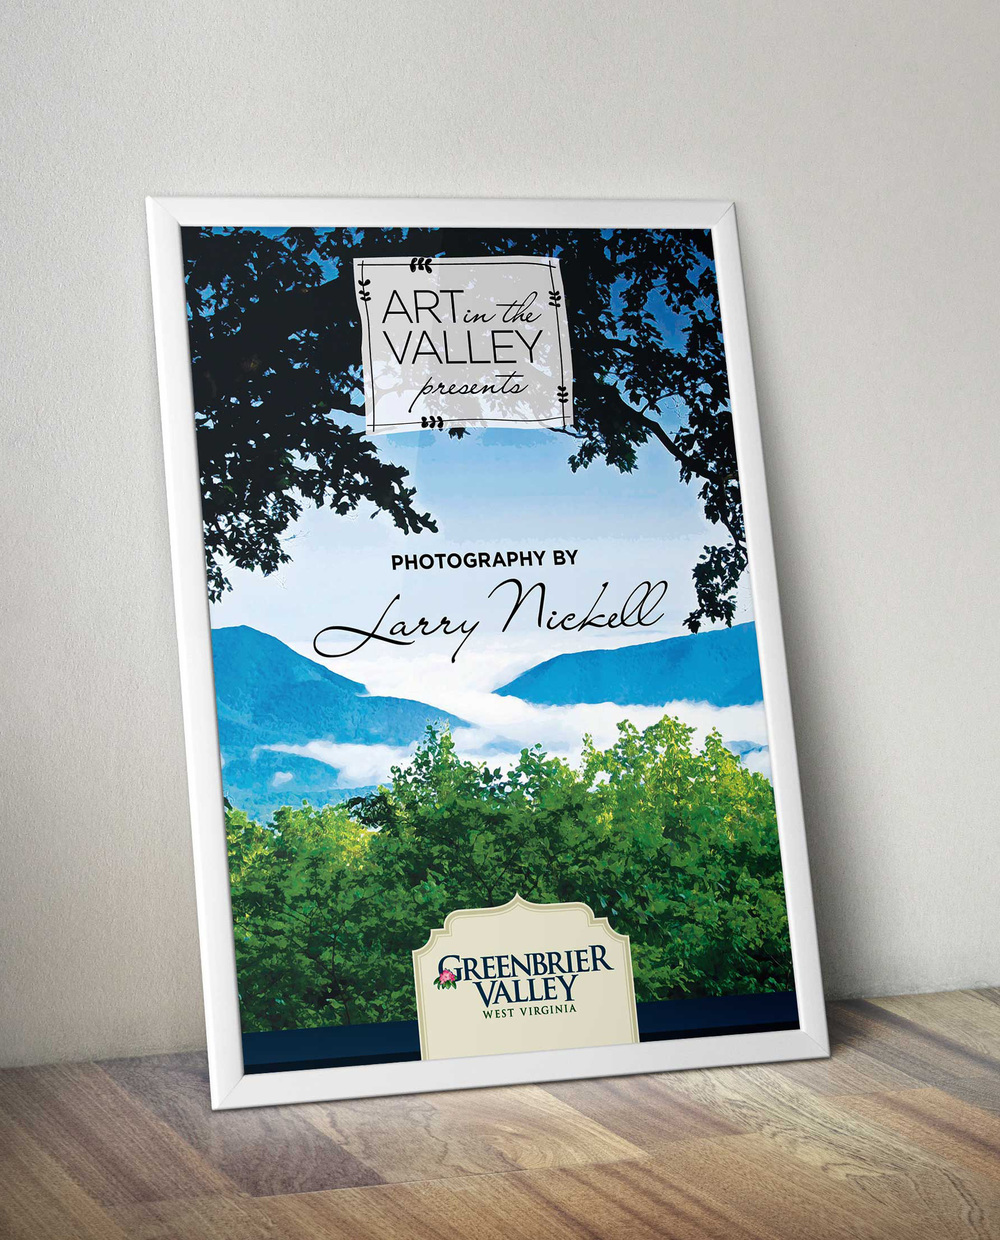 Greenbrier Valley Art in the Valley Poster